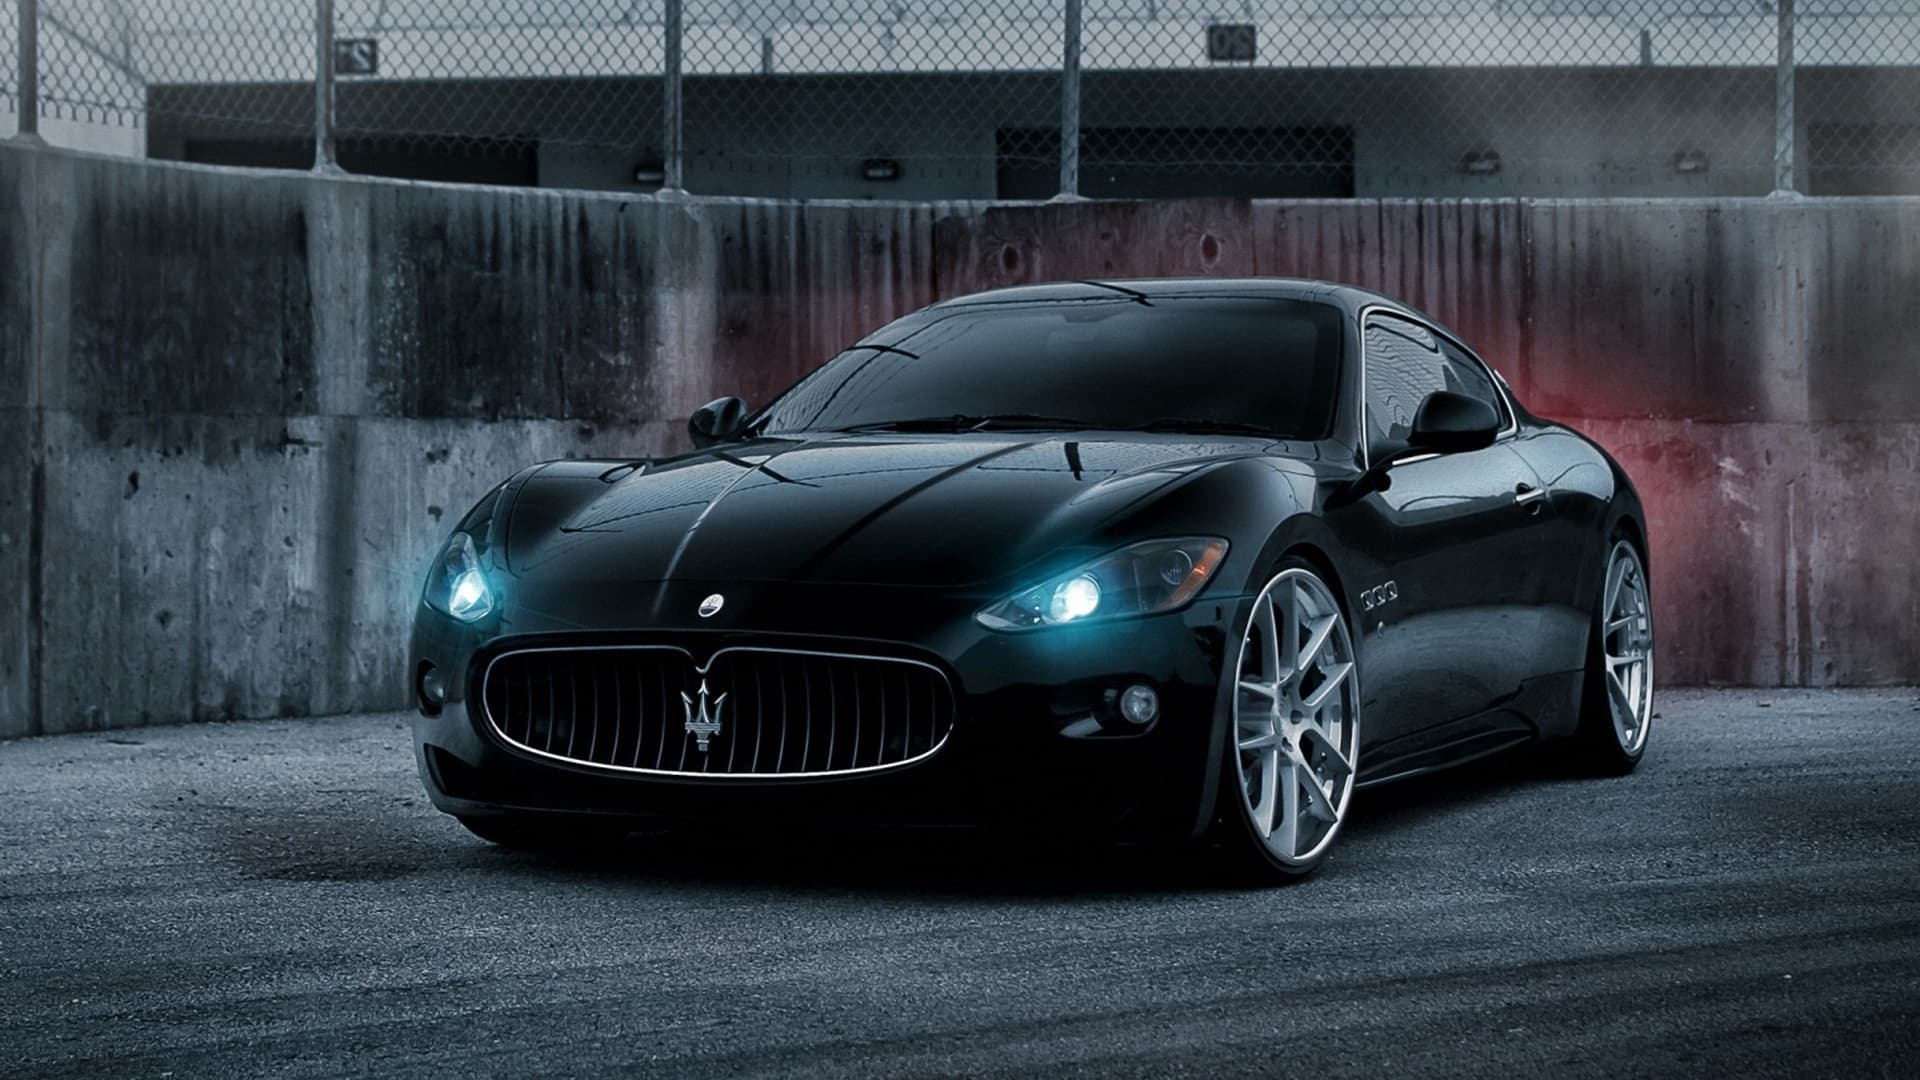 30+ Maserati GranTurismo Wallpapers High Resolution Download